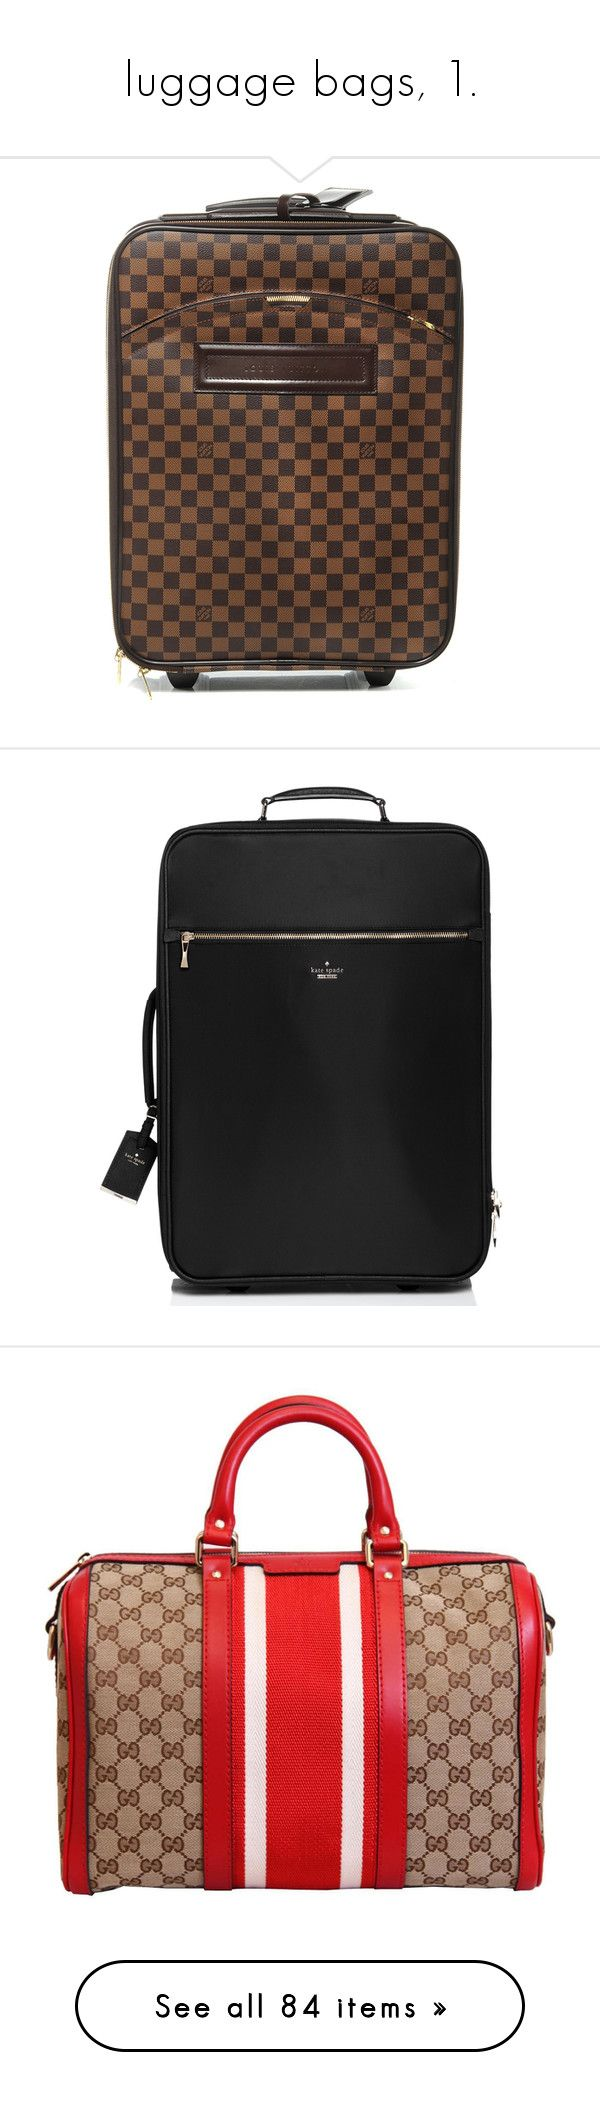 """""""luggage bags, 1."""" by originalimanim ❤ liked on Polyvore featuring bags, luggage, suitcases, travel, handbags, purses, bolsas, borse, gucci purse and red hand bags"""